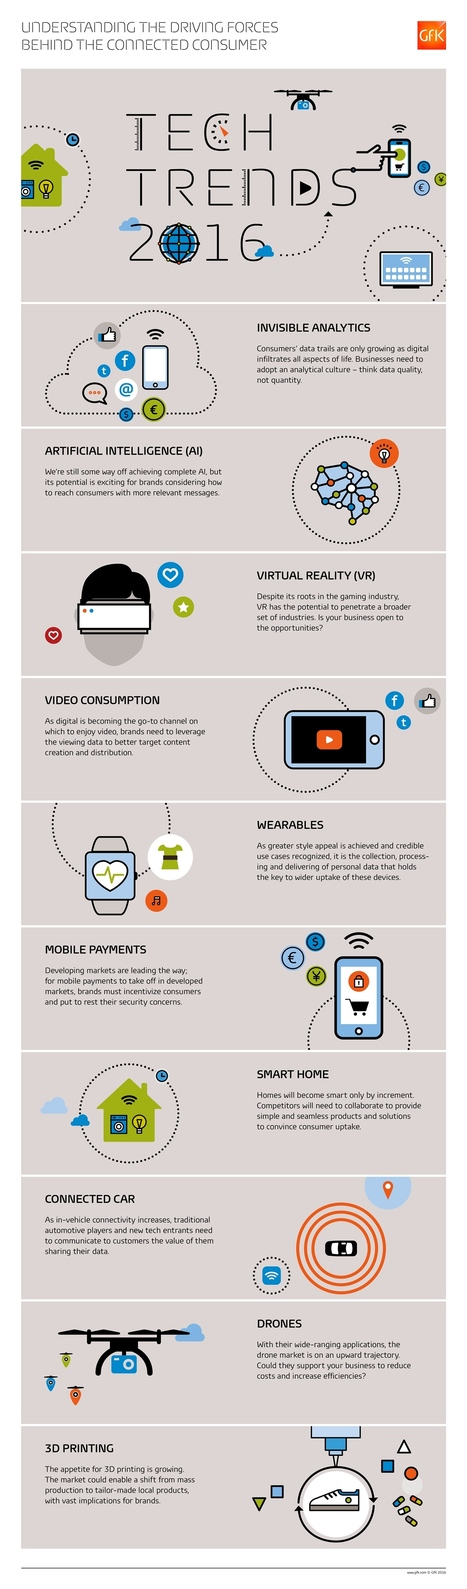 Infographic_Tech_Trends_2016_1112x3784px.jpg (1112x3784 pixels) | Leadership and Management | Scoop.it